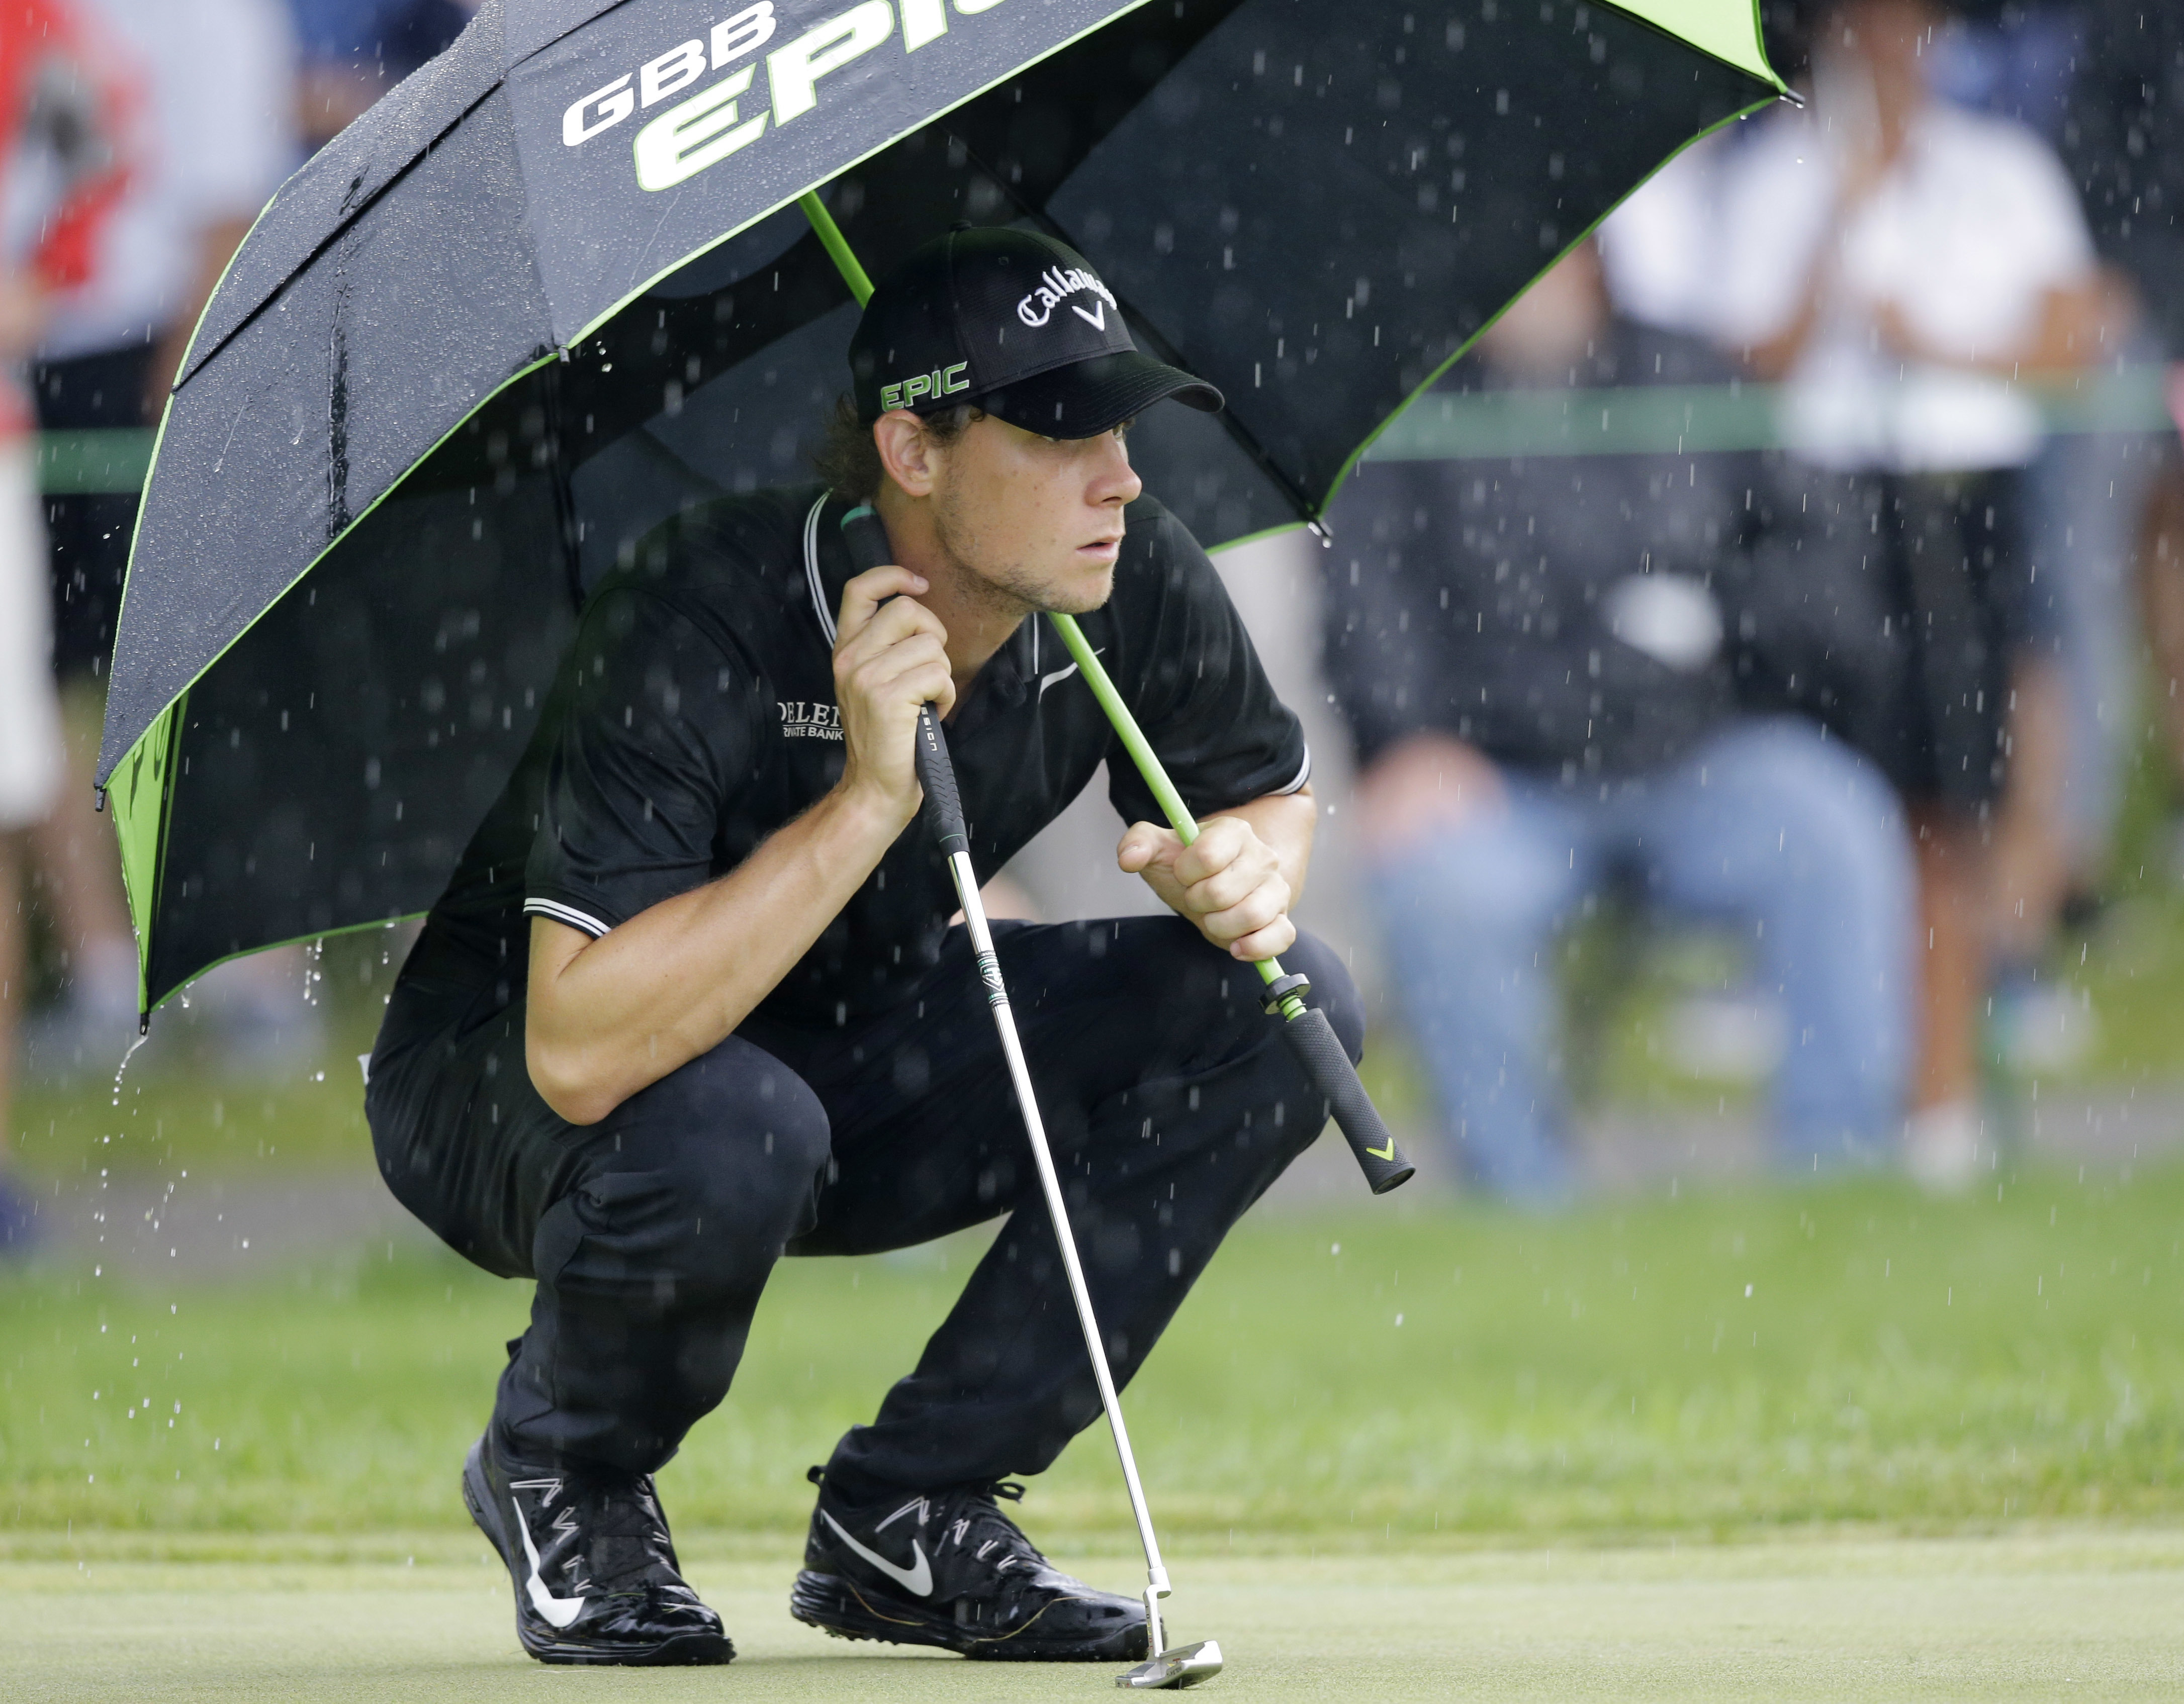 Thomas Pieters, from Belgium, waits to putt on the first green as rain falls during the second round of the Bridgestone Invitational golf tournament at Firestone Country Club, Friday, Aug. 4, 2017, in Akron, Ohio. (AP Photo/Tony Dejak)